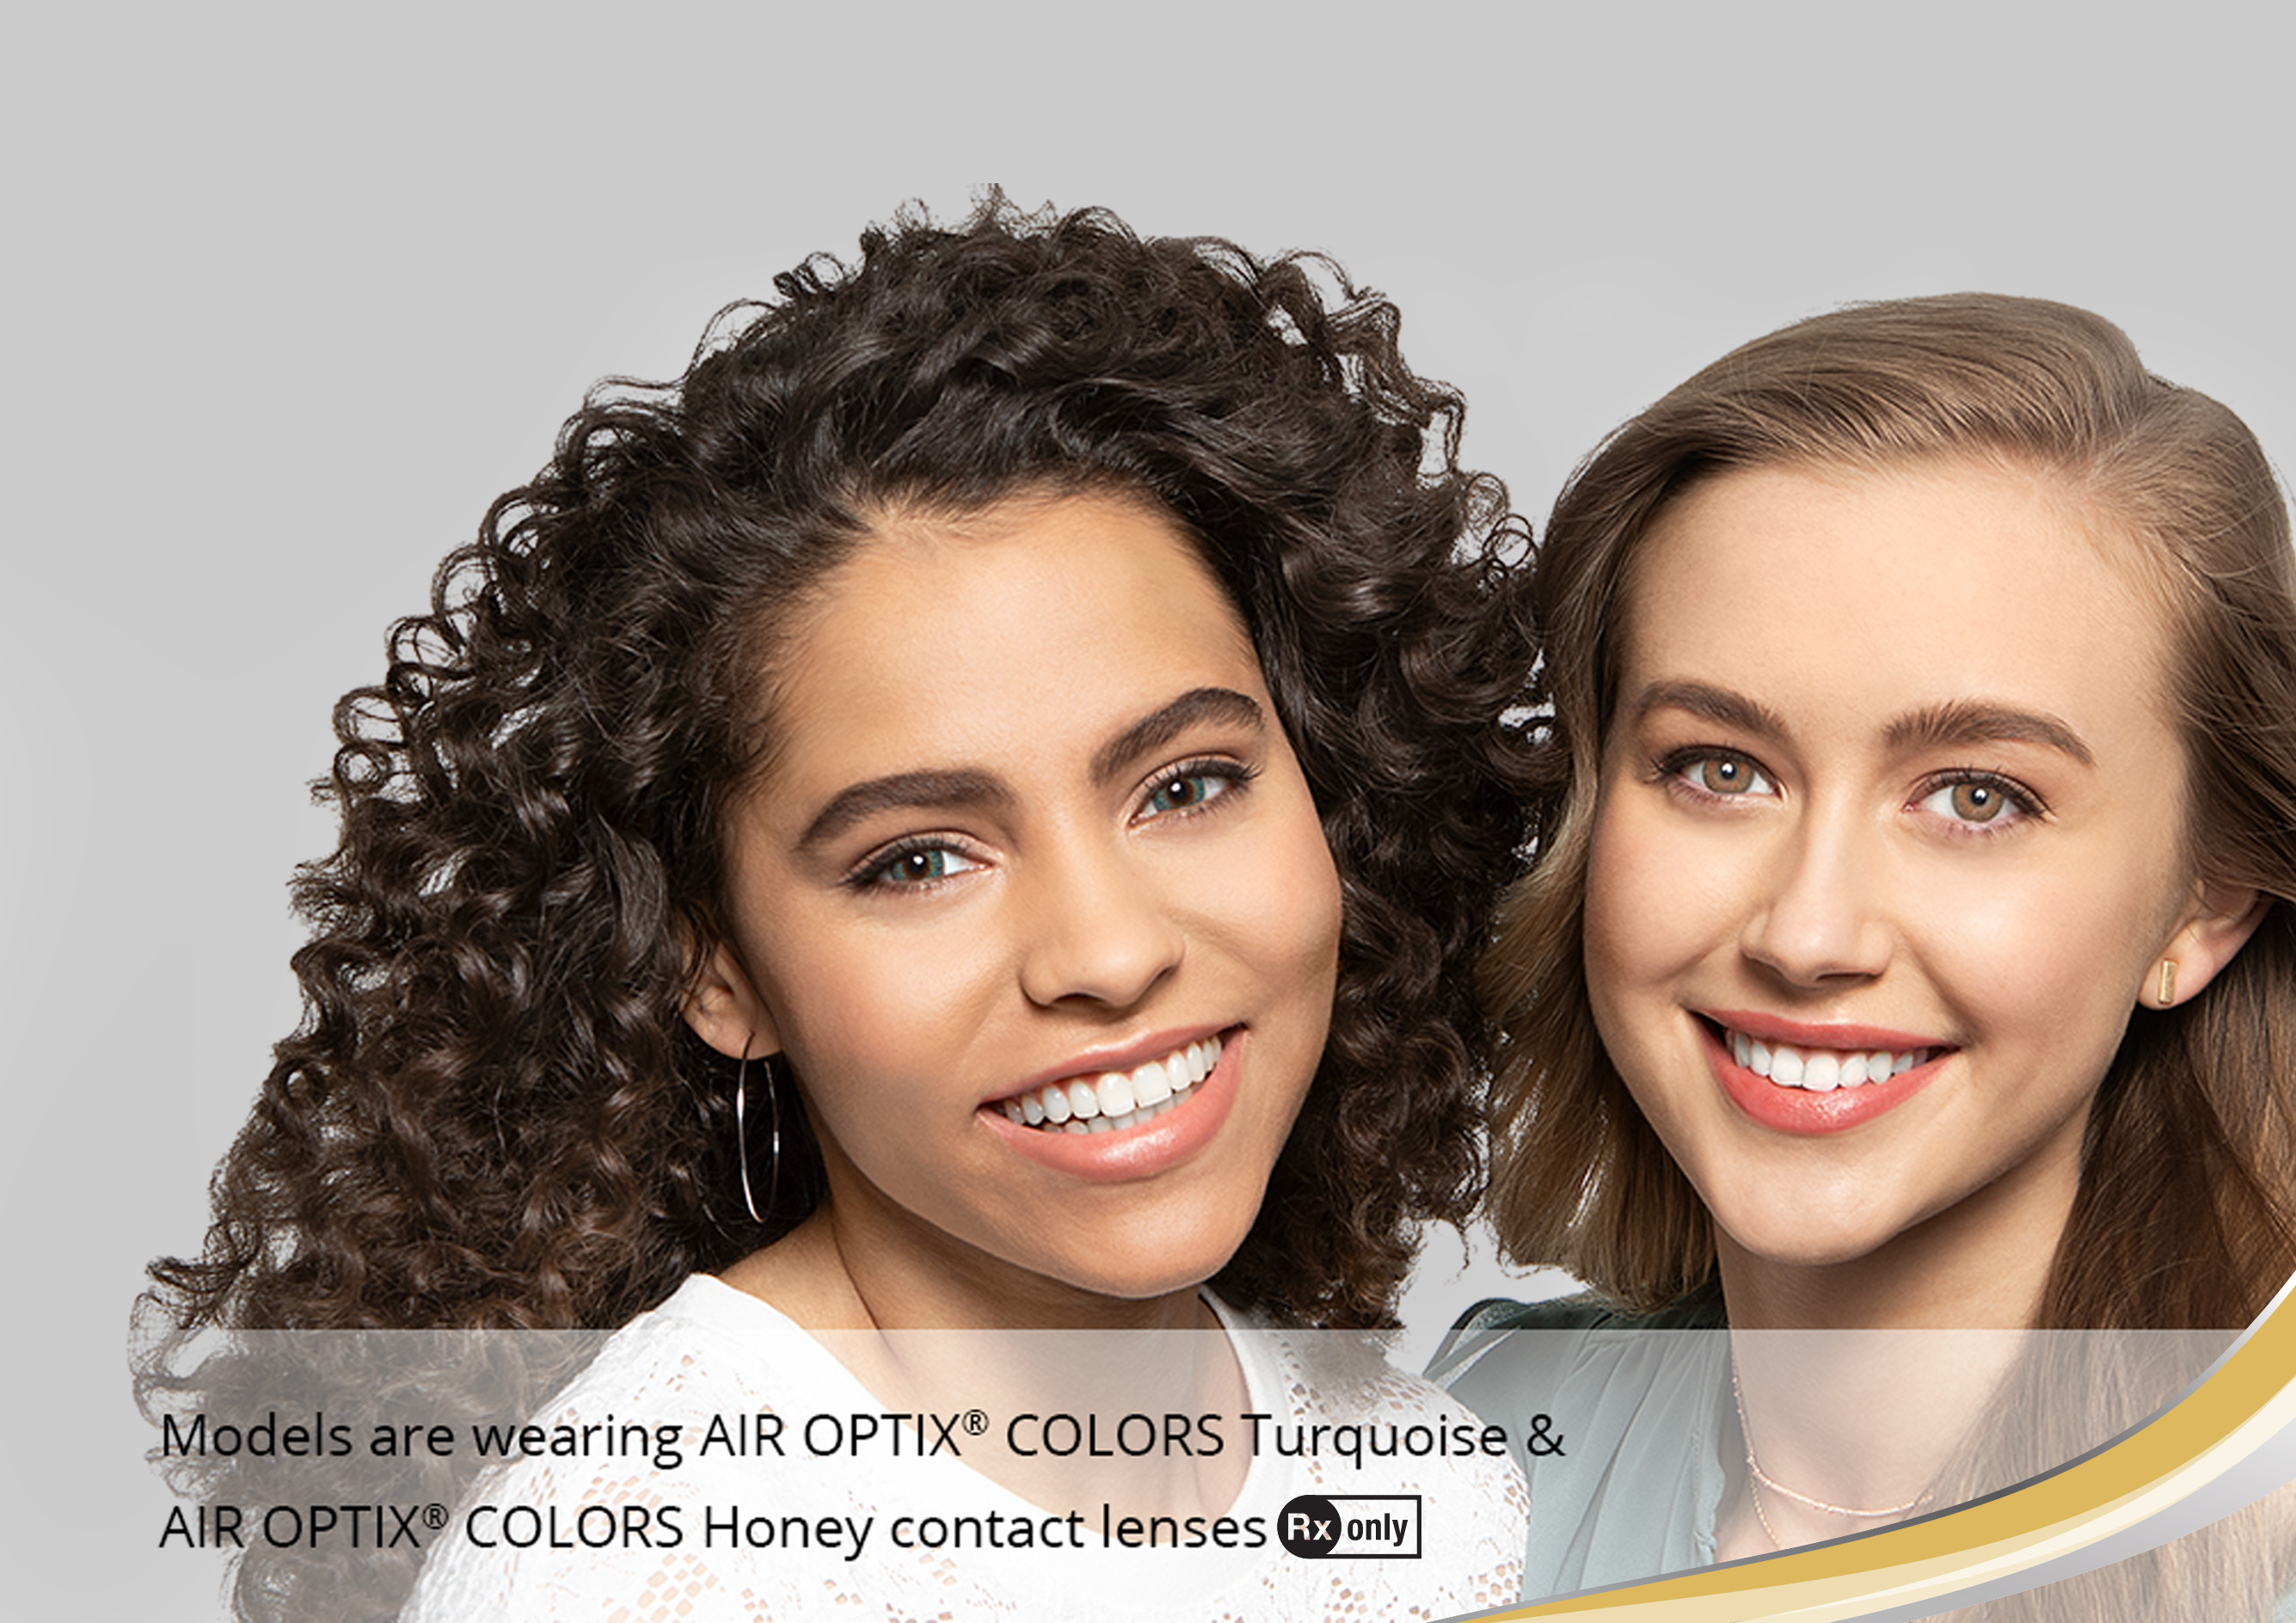 2 women wearing color contact lenses